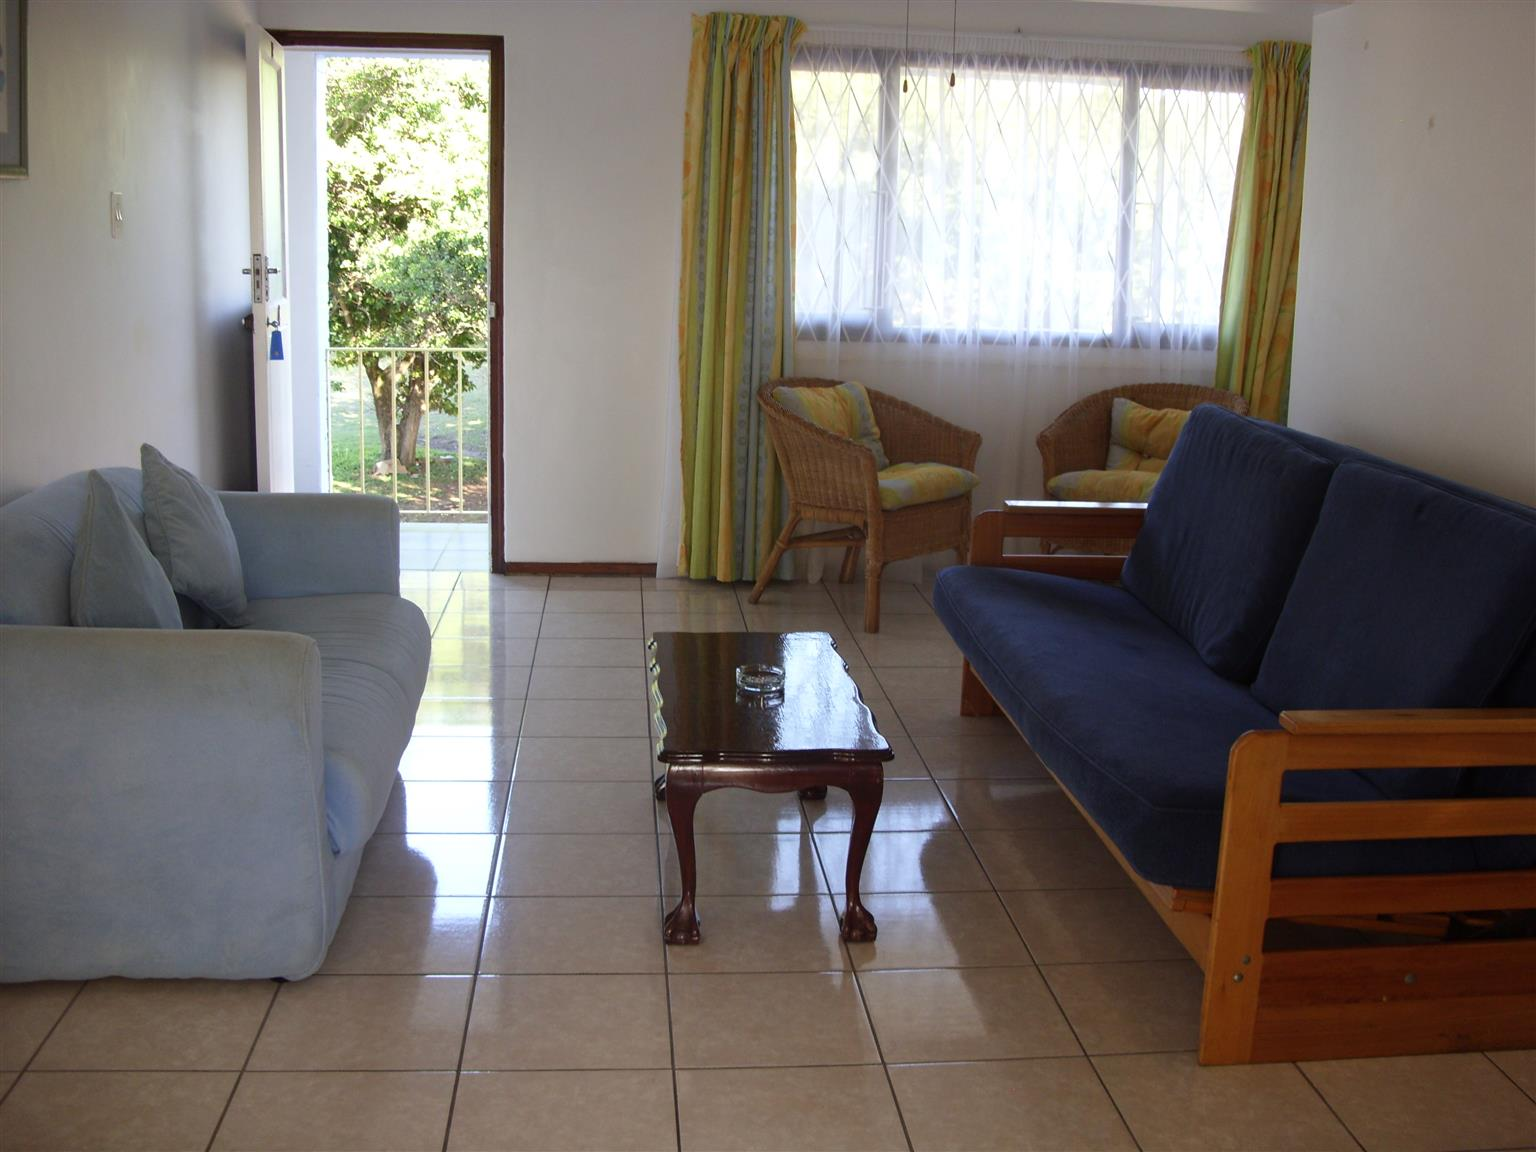 GOOD ROI INCOME PAYS A 100% BOND BLOCK OF FLATS FOR SALE UVONGO R2,550,000 1, 2 & 3 BEDROOM TENANTED